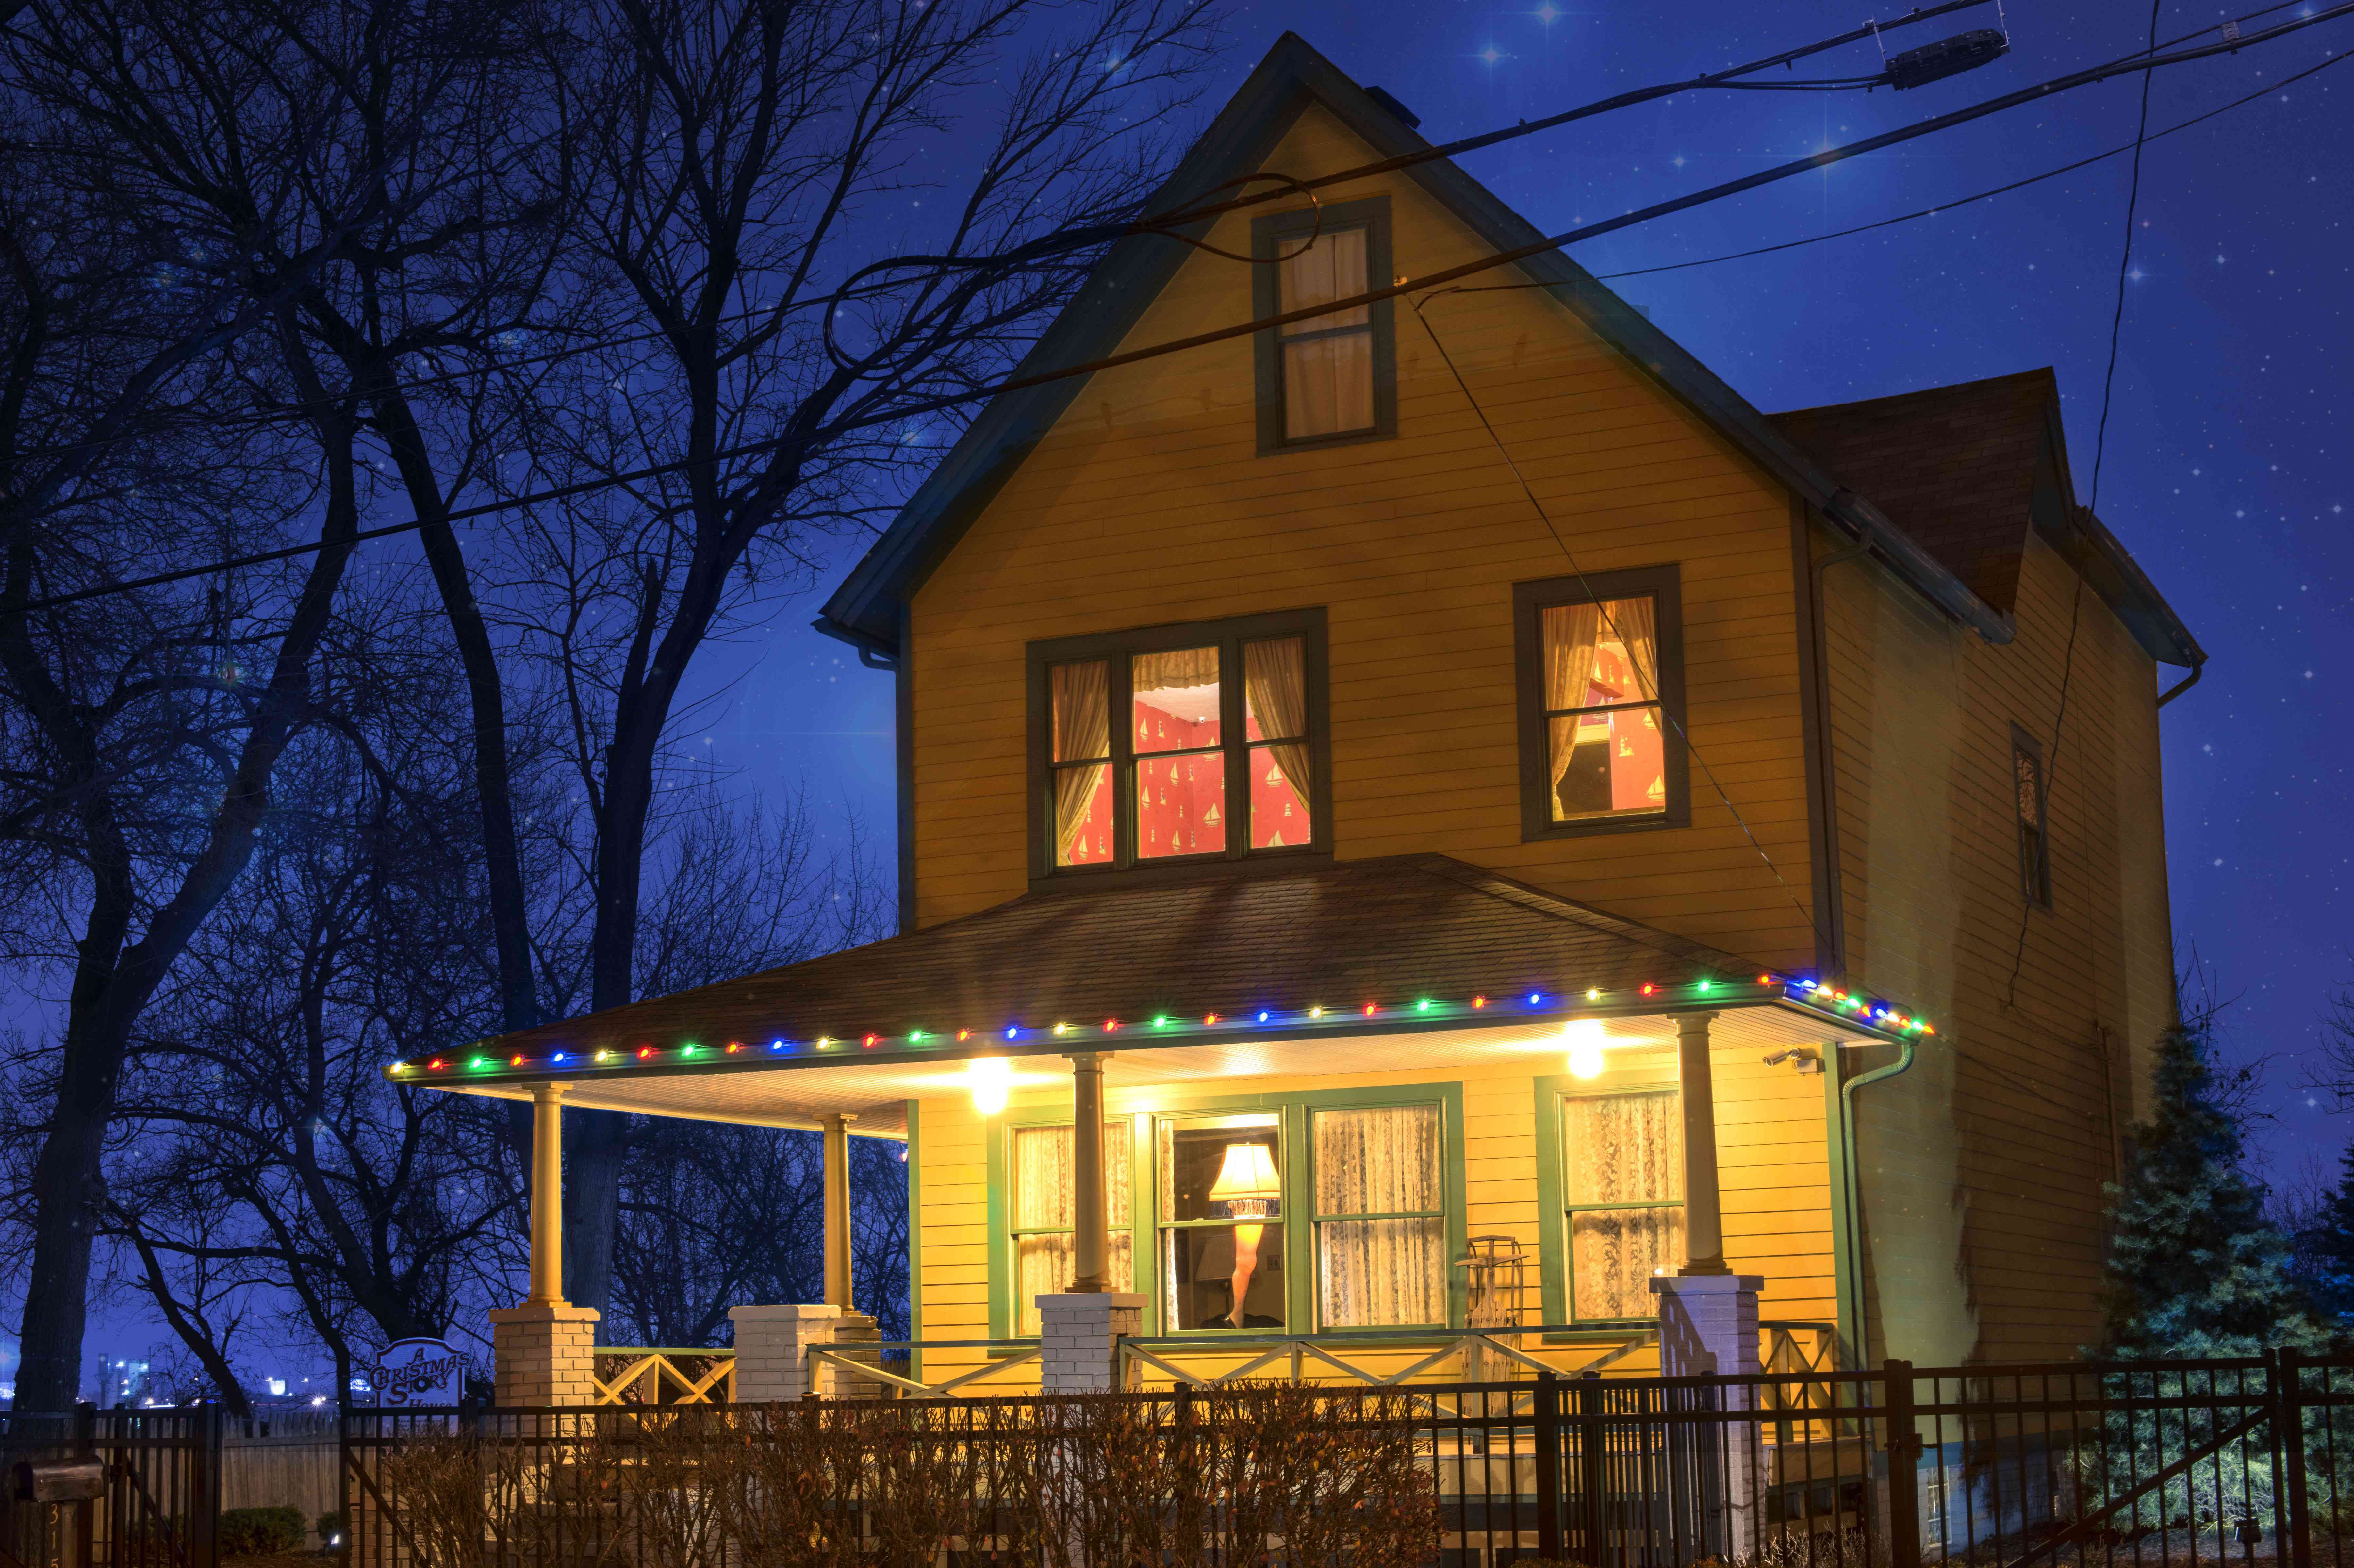 'A Christmas Story' house in Cleveland, Ohio